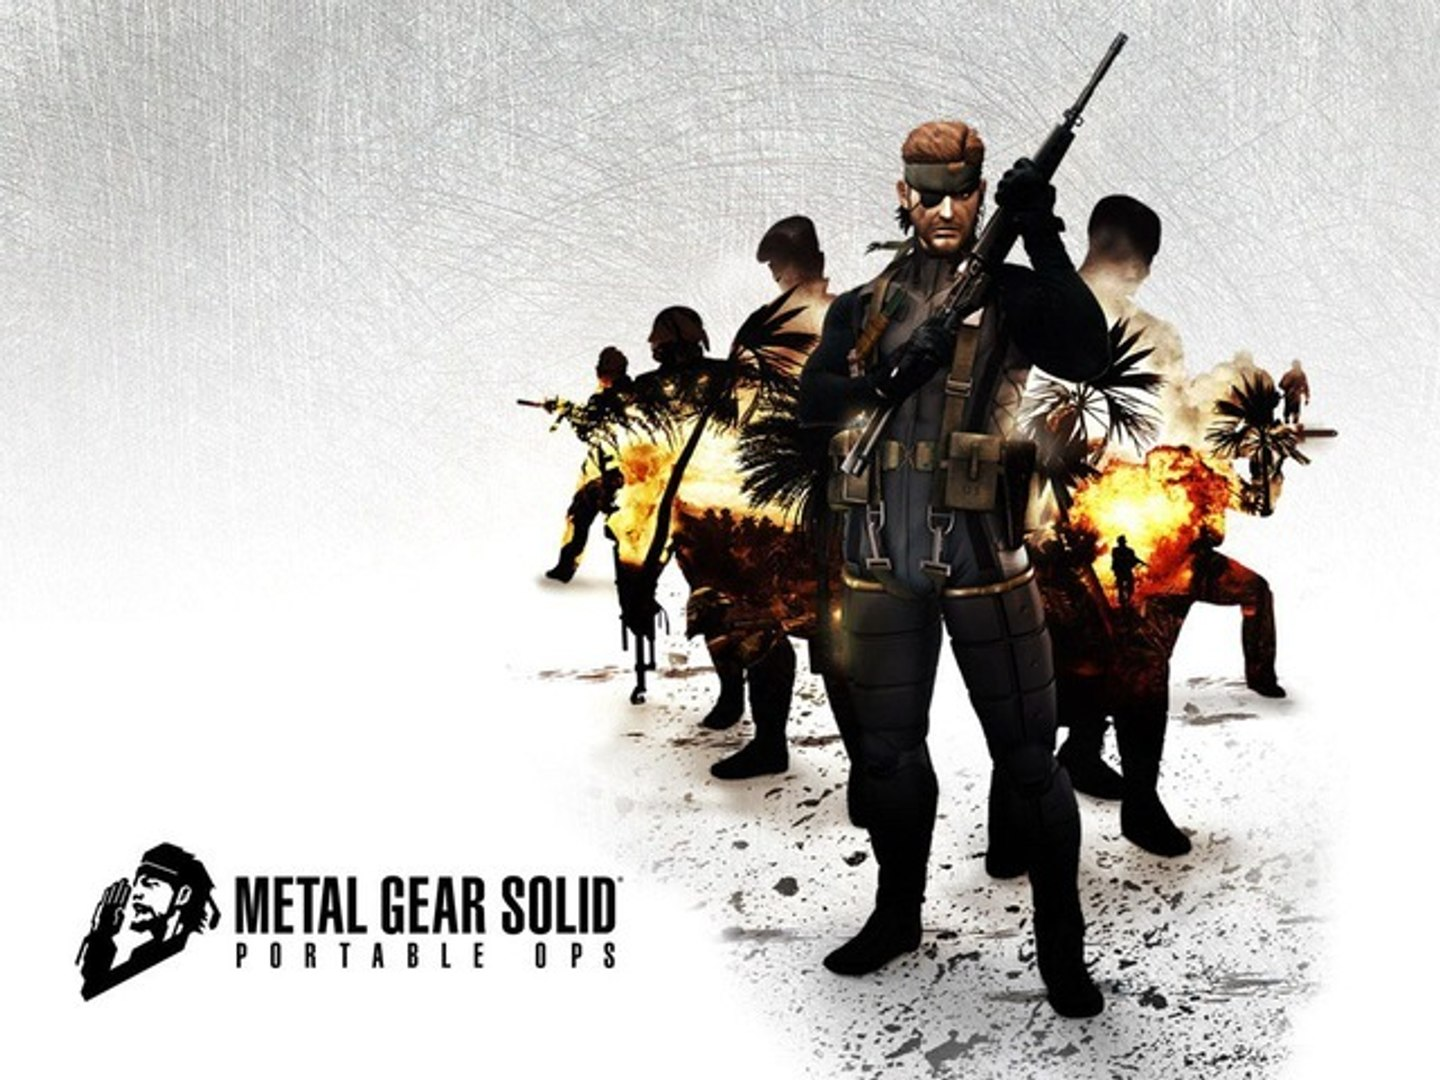 Metal Gear Solid : Portable Ops (2006) - TGS 2006 Trailer [HD]